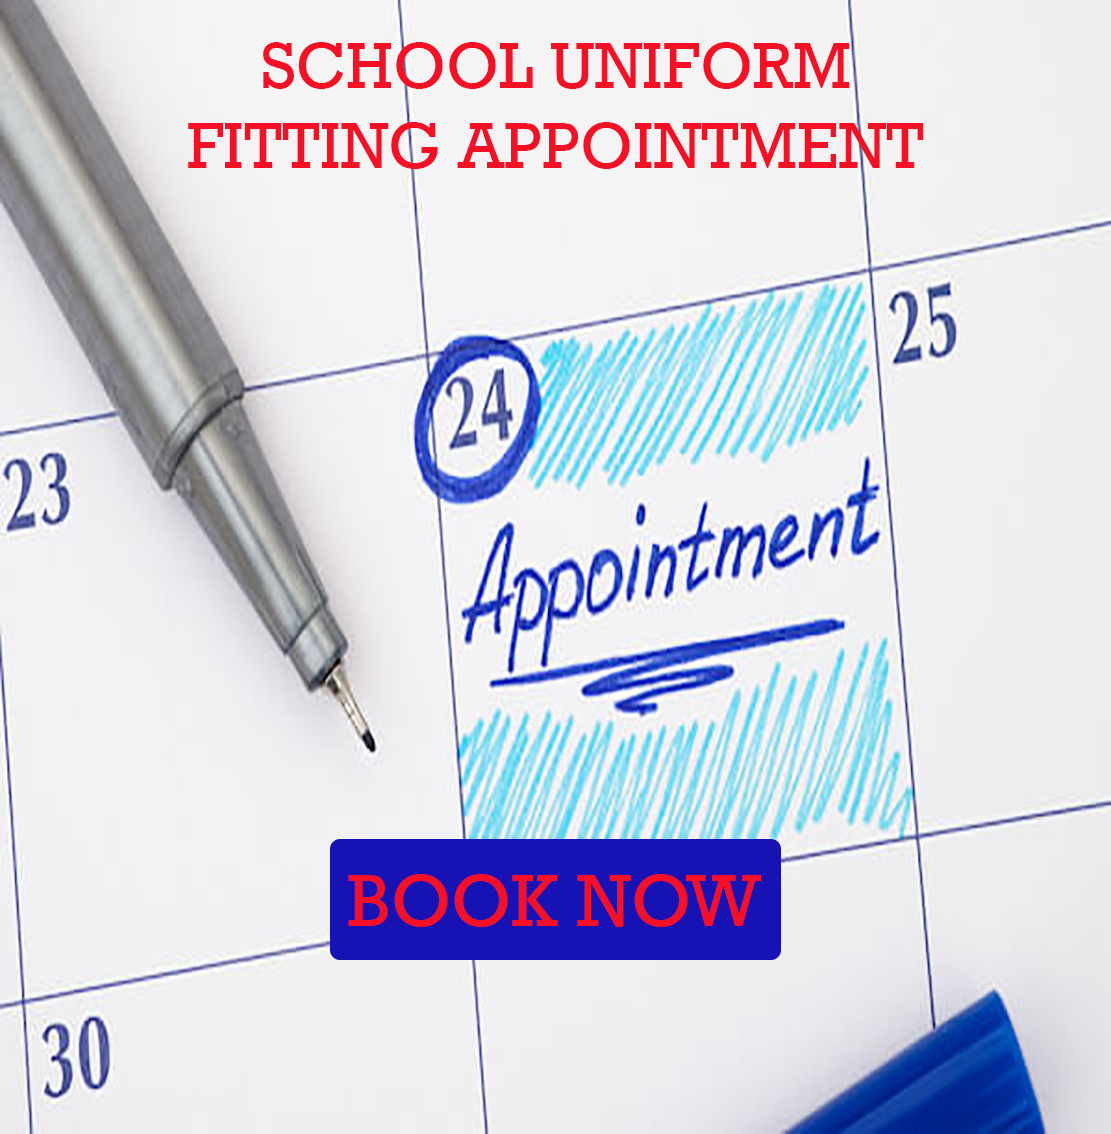 Appointment Booking Form